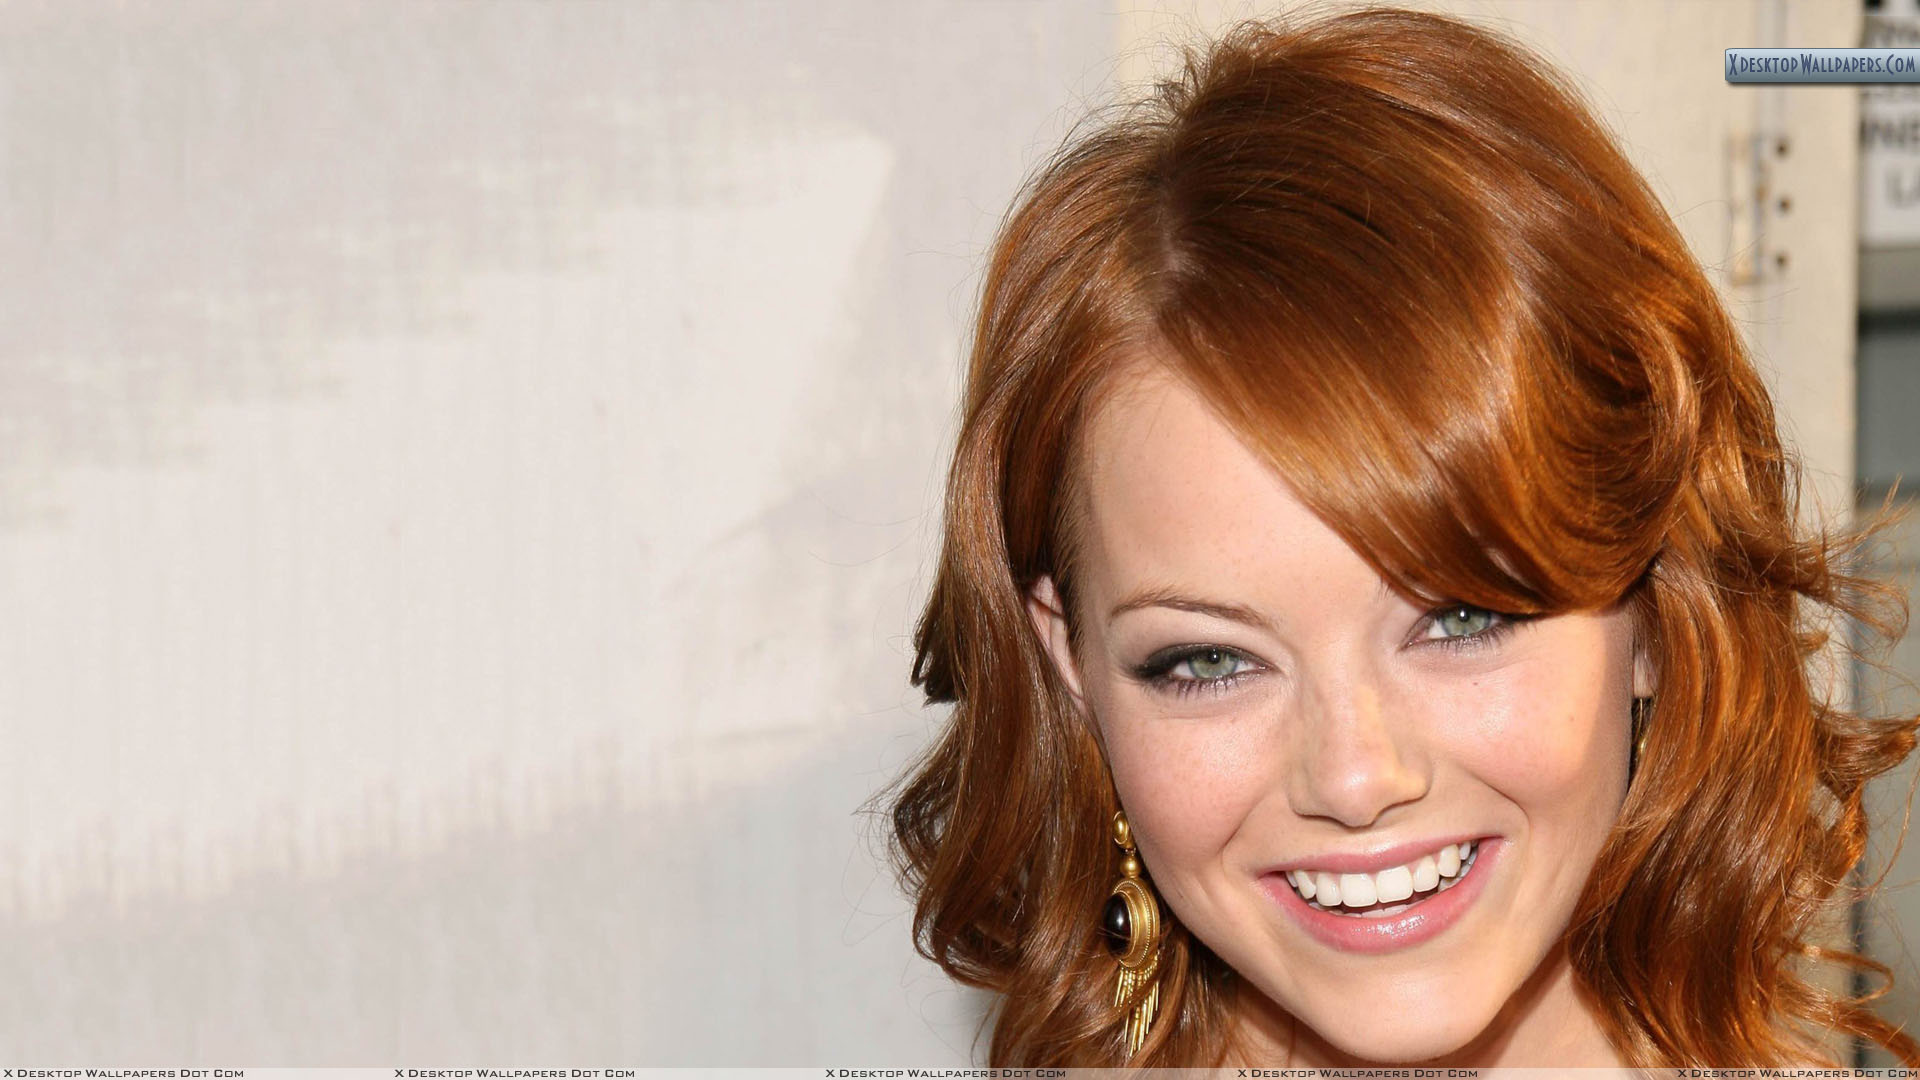 Emma Stone Wallpapers, Photos u0026 Images In HD - 1920x1080 - jpeg